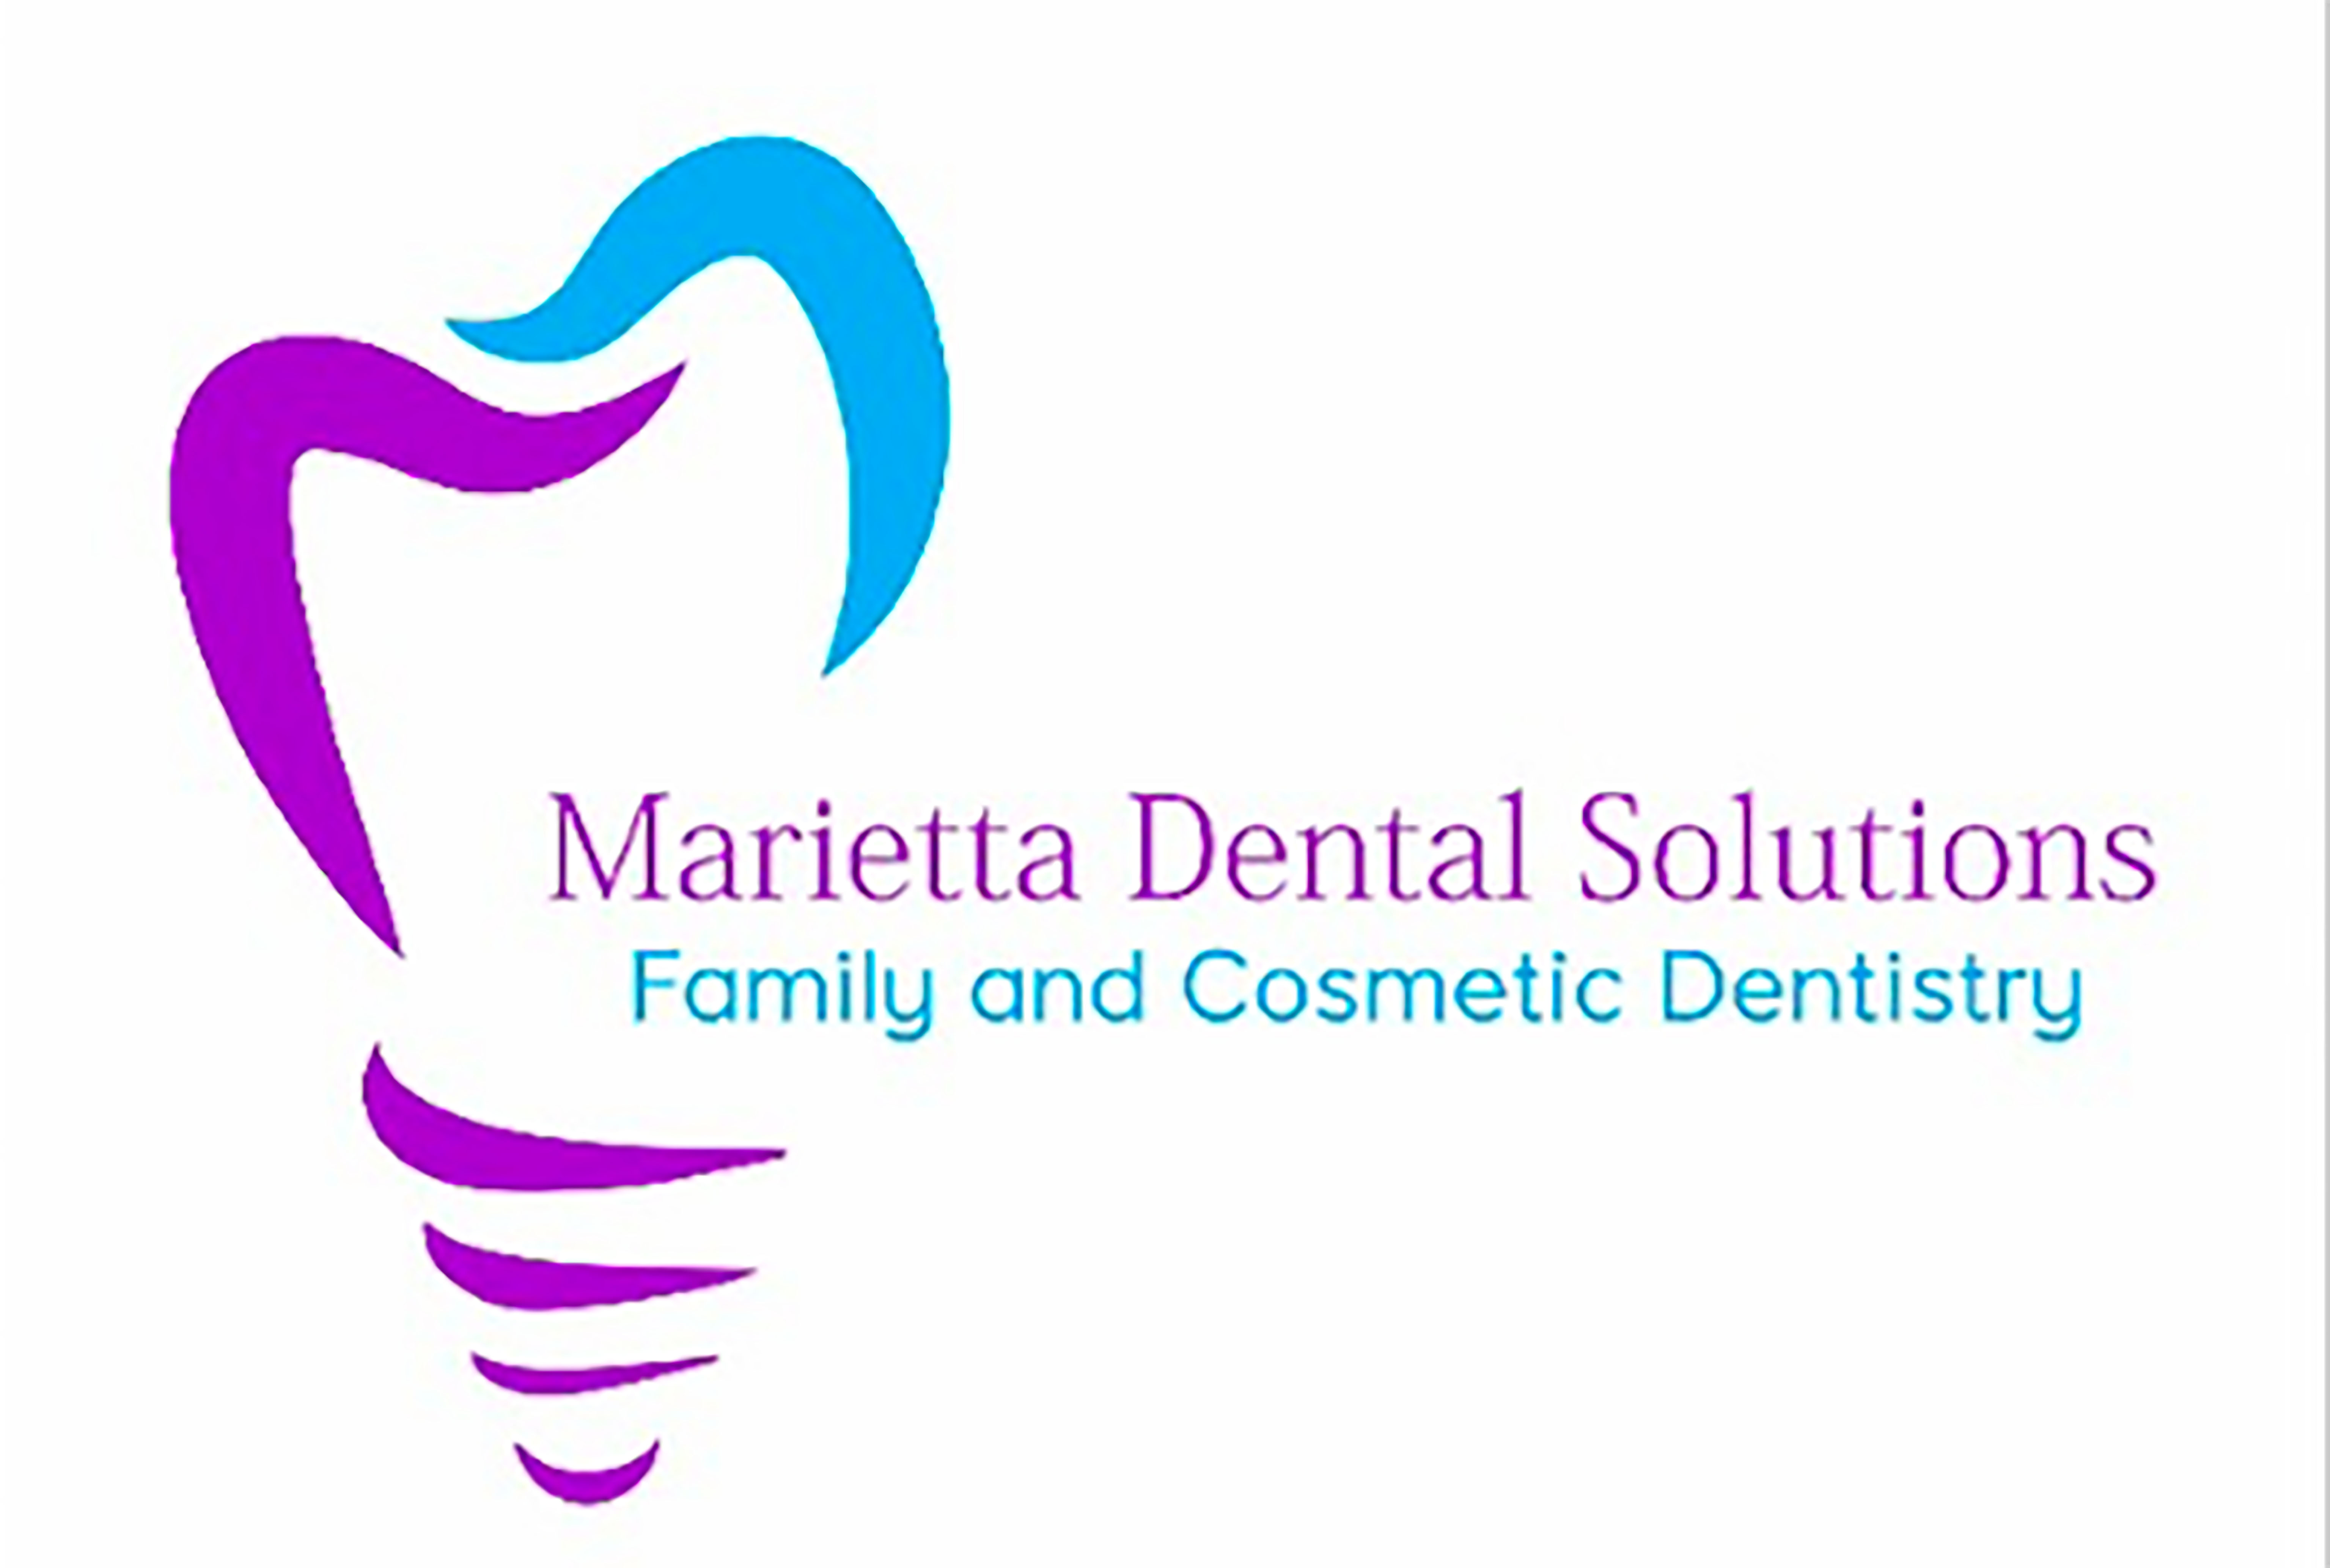 Marietta Dental Solutions